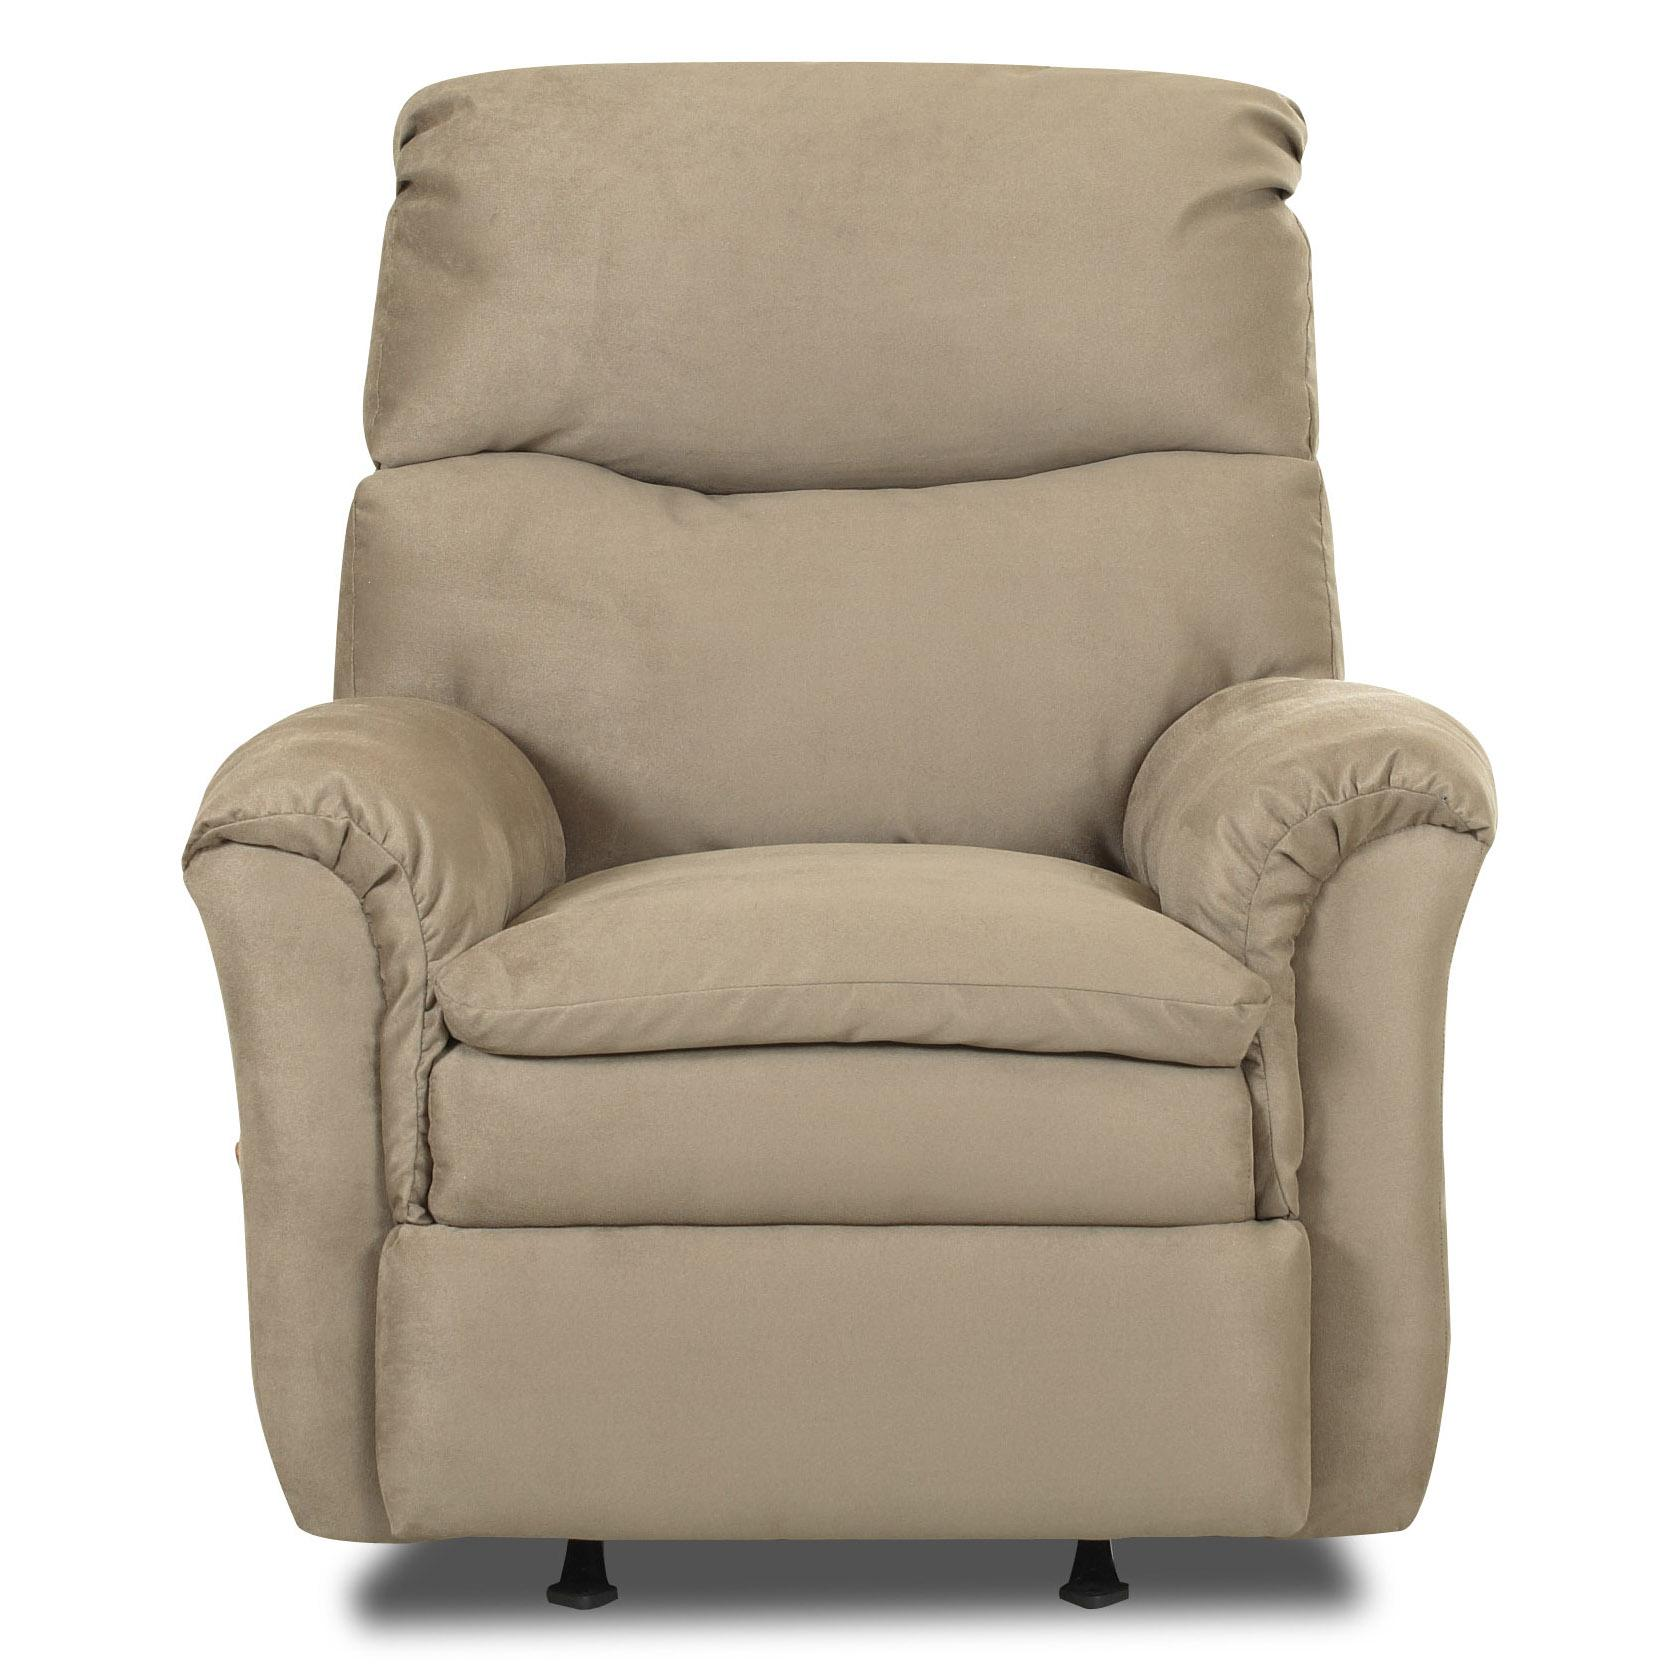 Image of: Rocking Recliner Chair Ideas